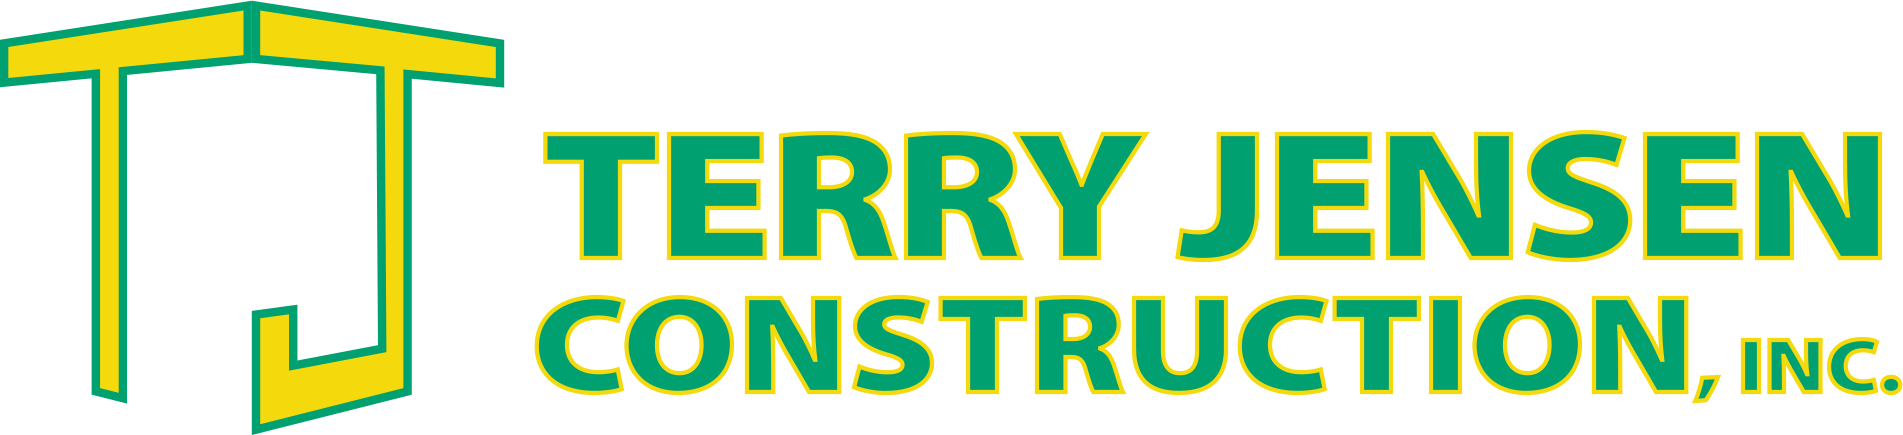 Terry Jensen Construction